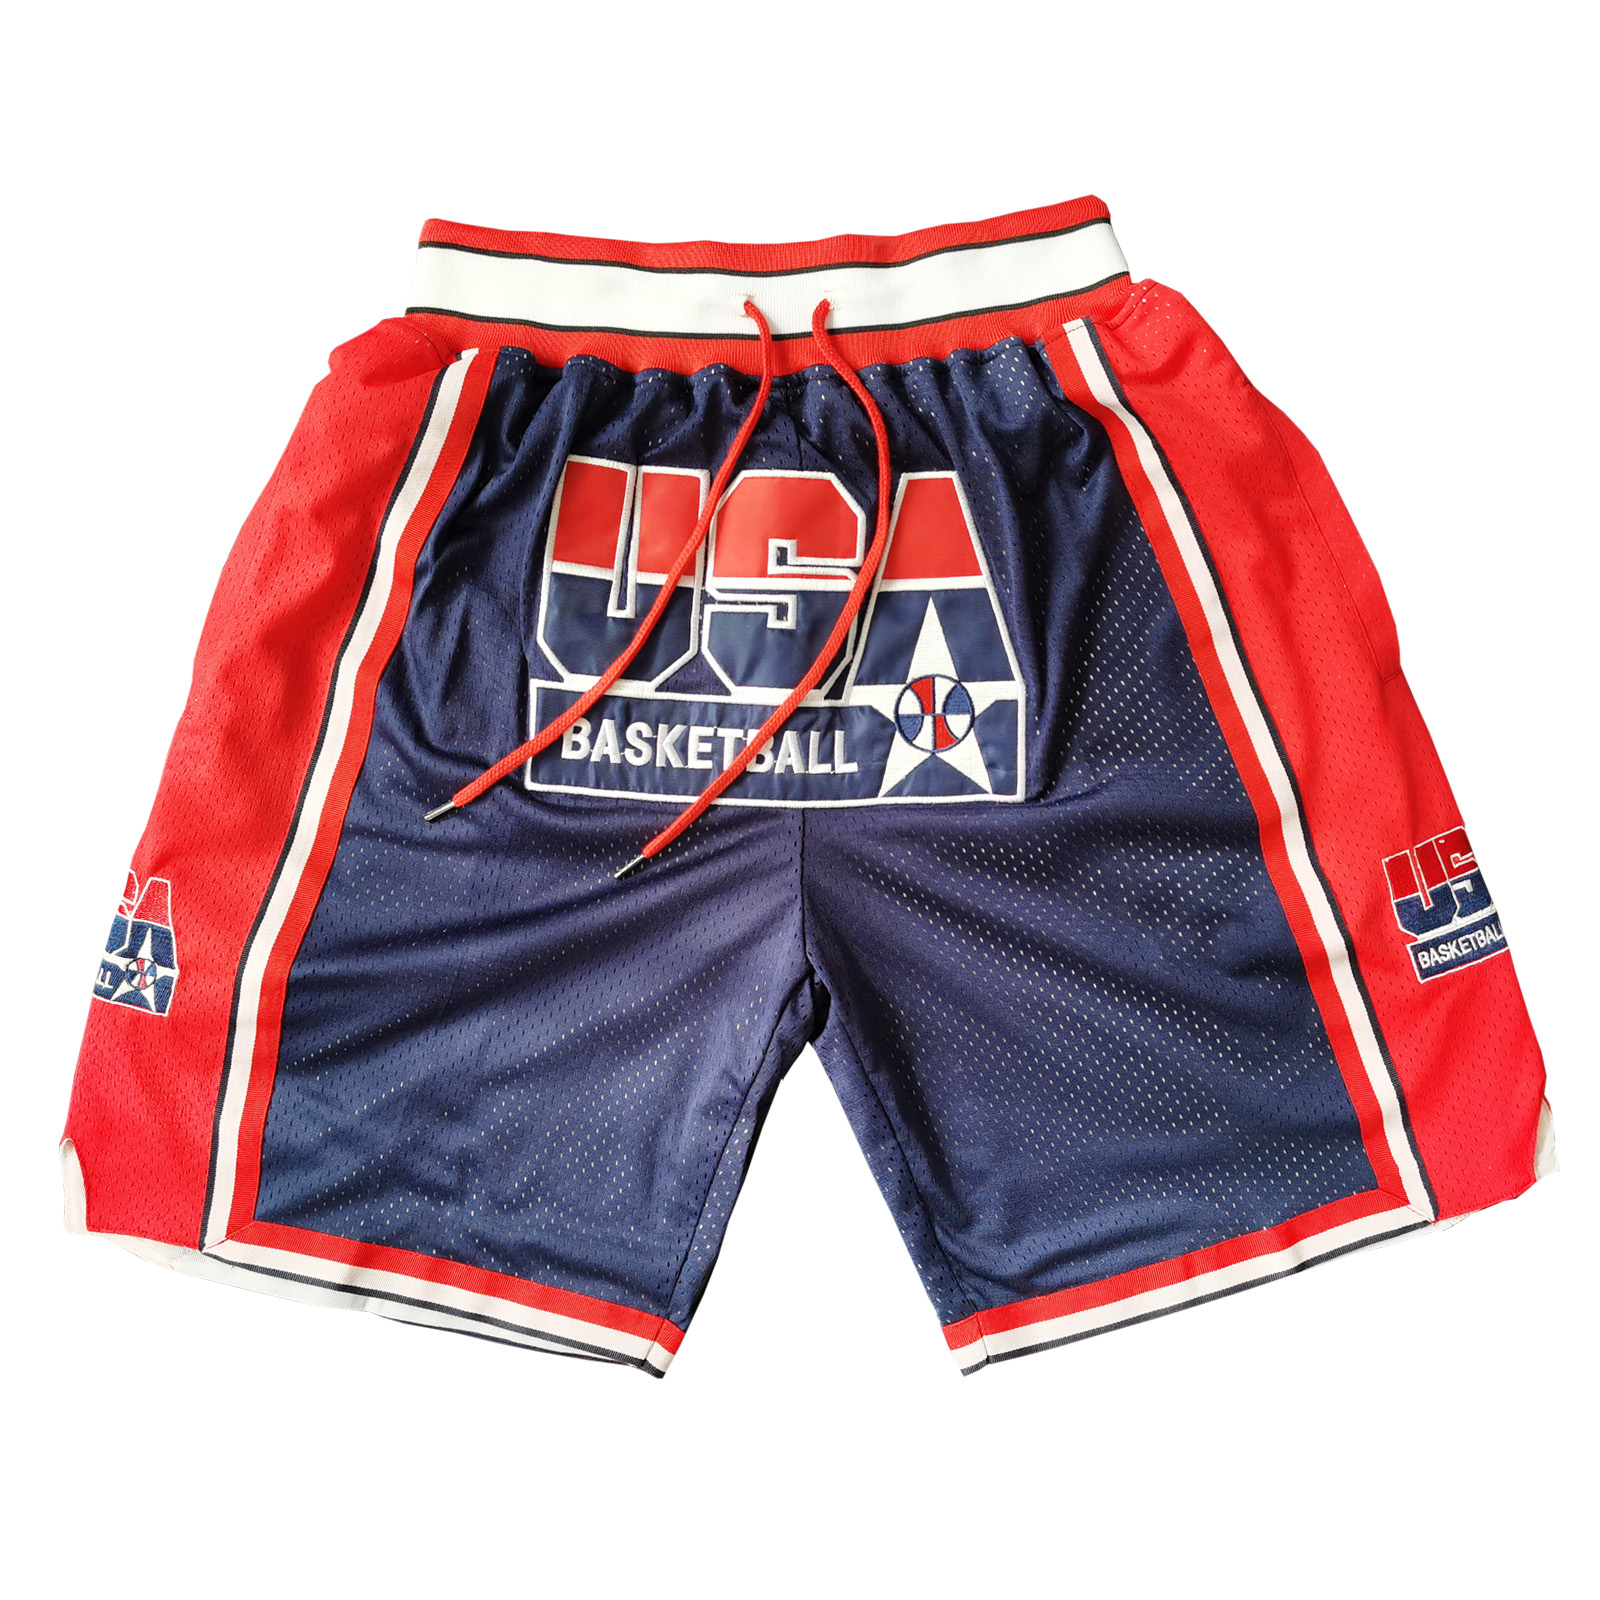 1992 <font><b>USA</b></font> Dream Team Basketball Shorts with Pockets image